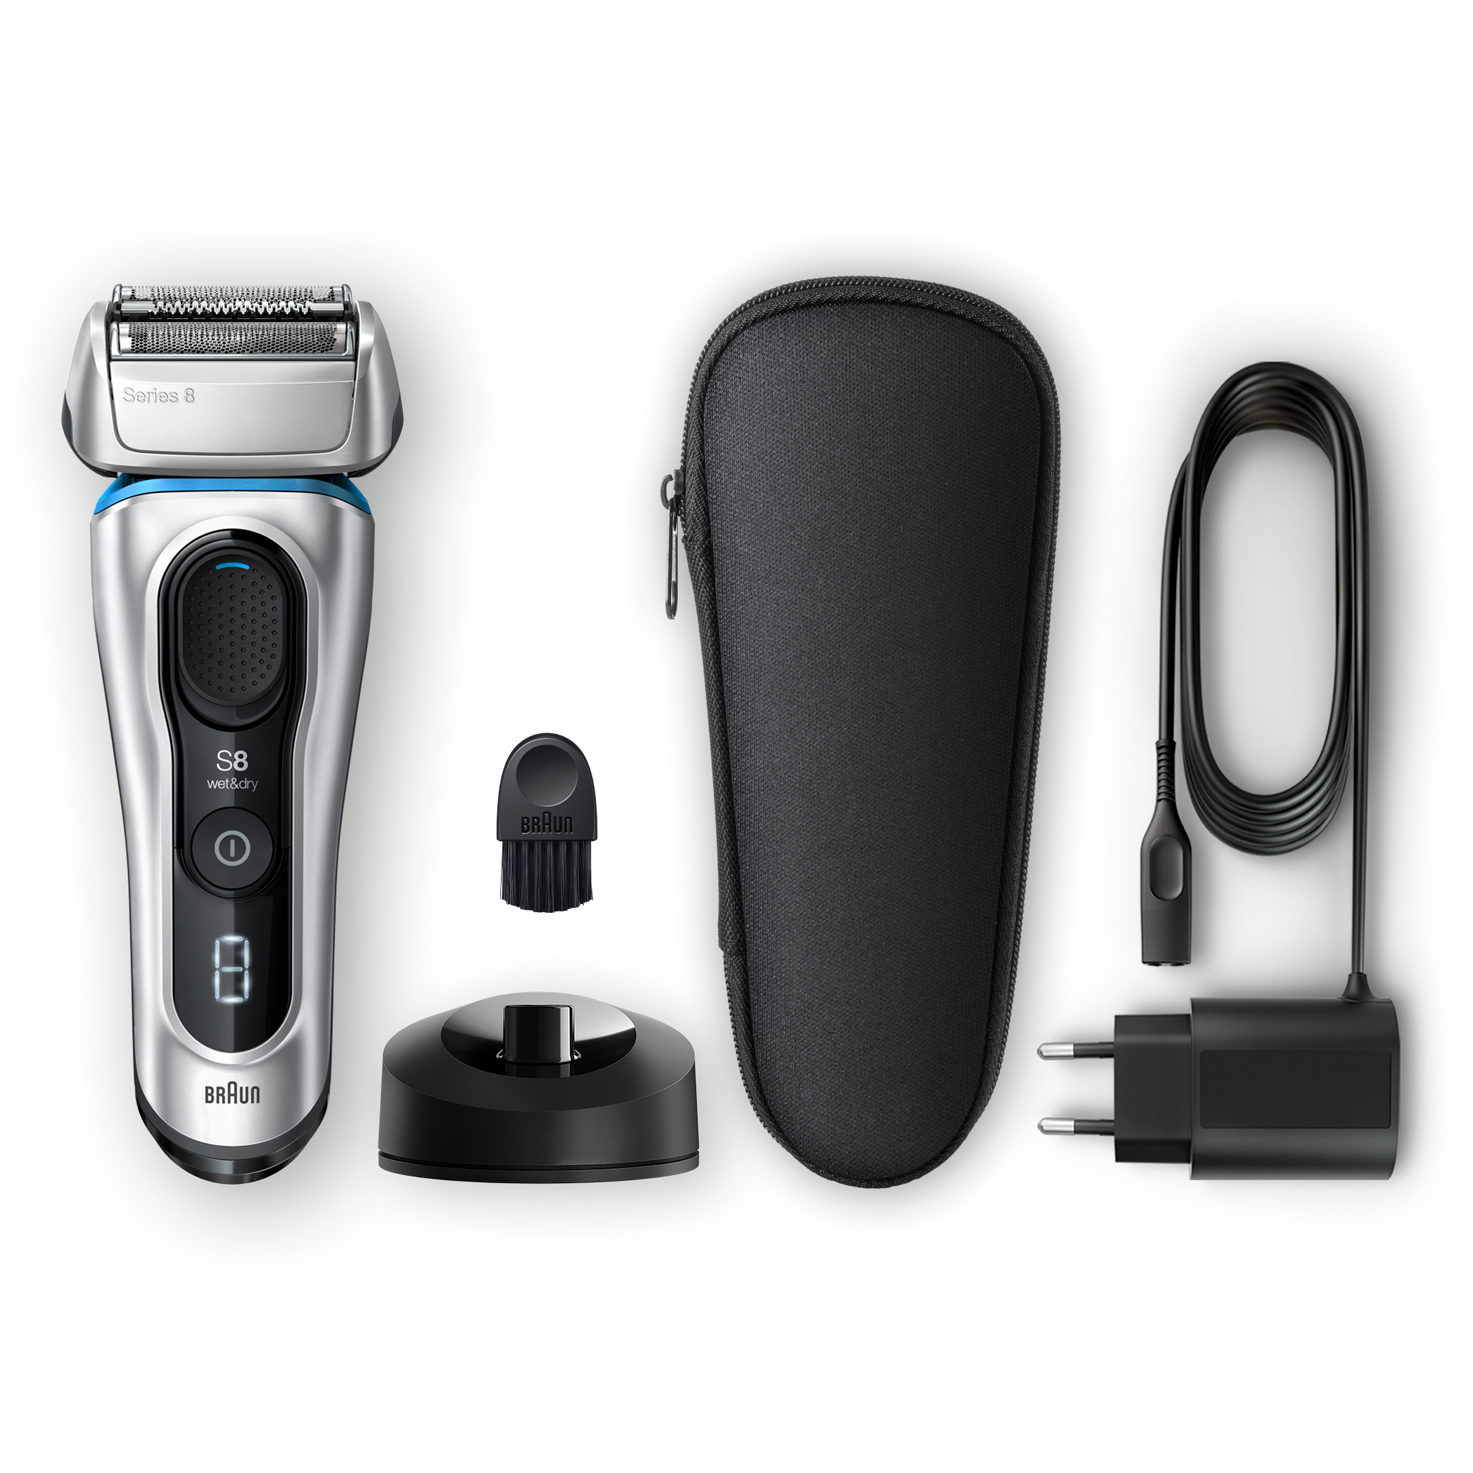 Series 8 8350s shaver - What´s in the box